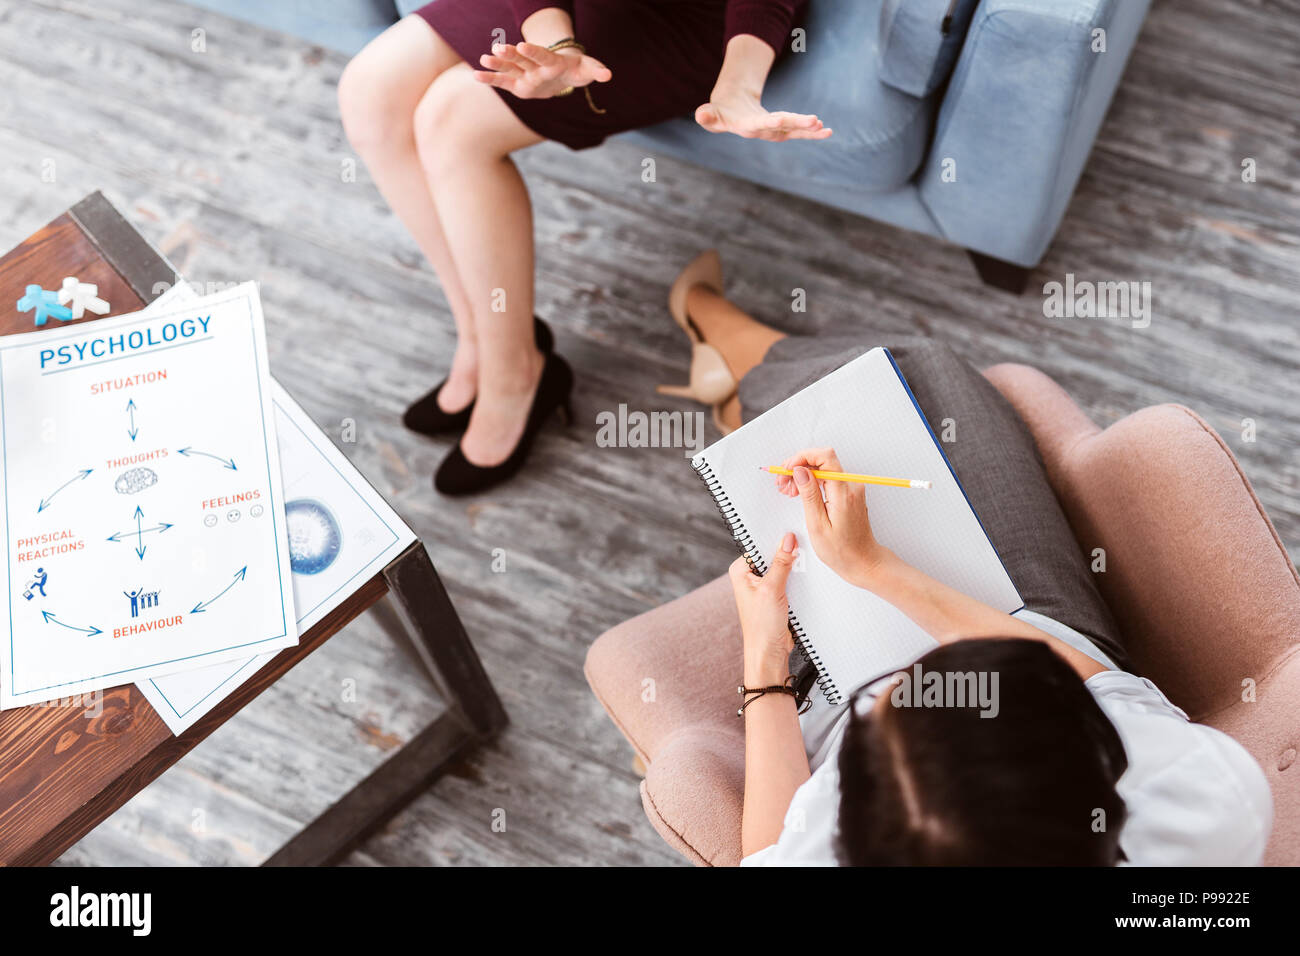 Emotional patient using gestures and a psychologist making notes - Stock Image